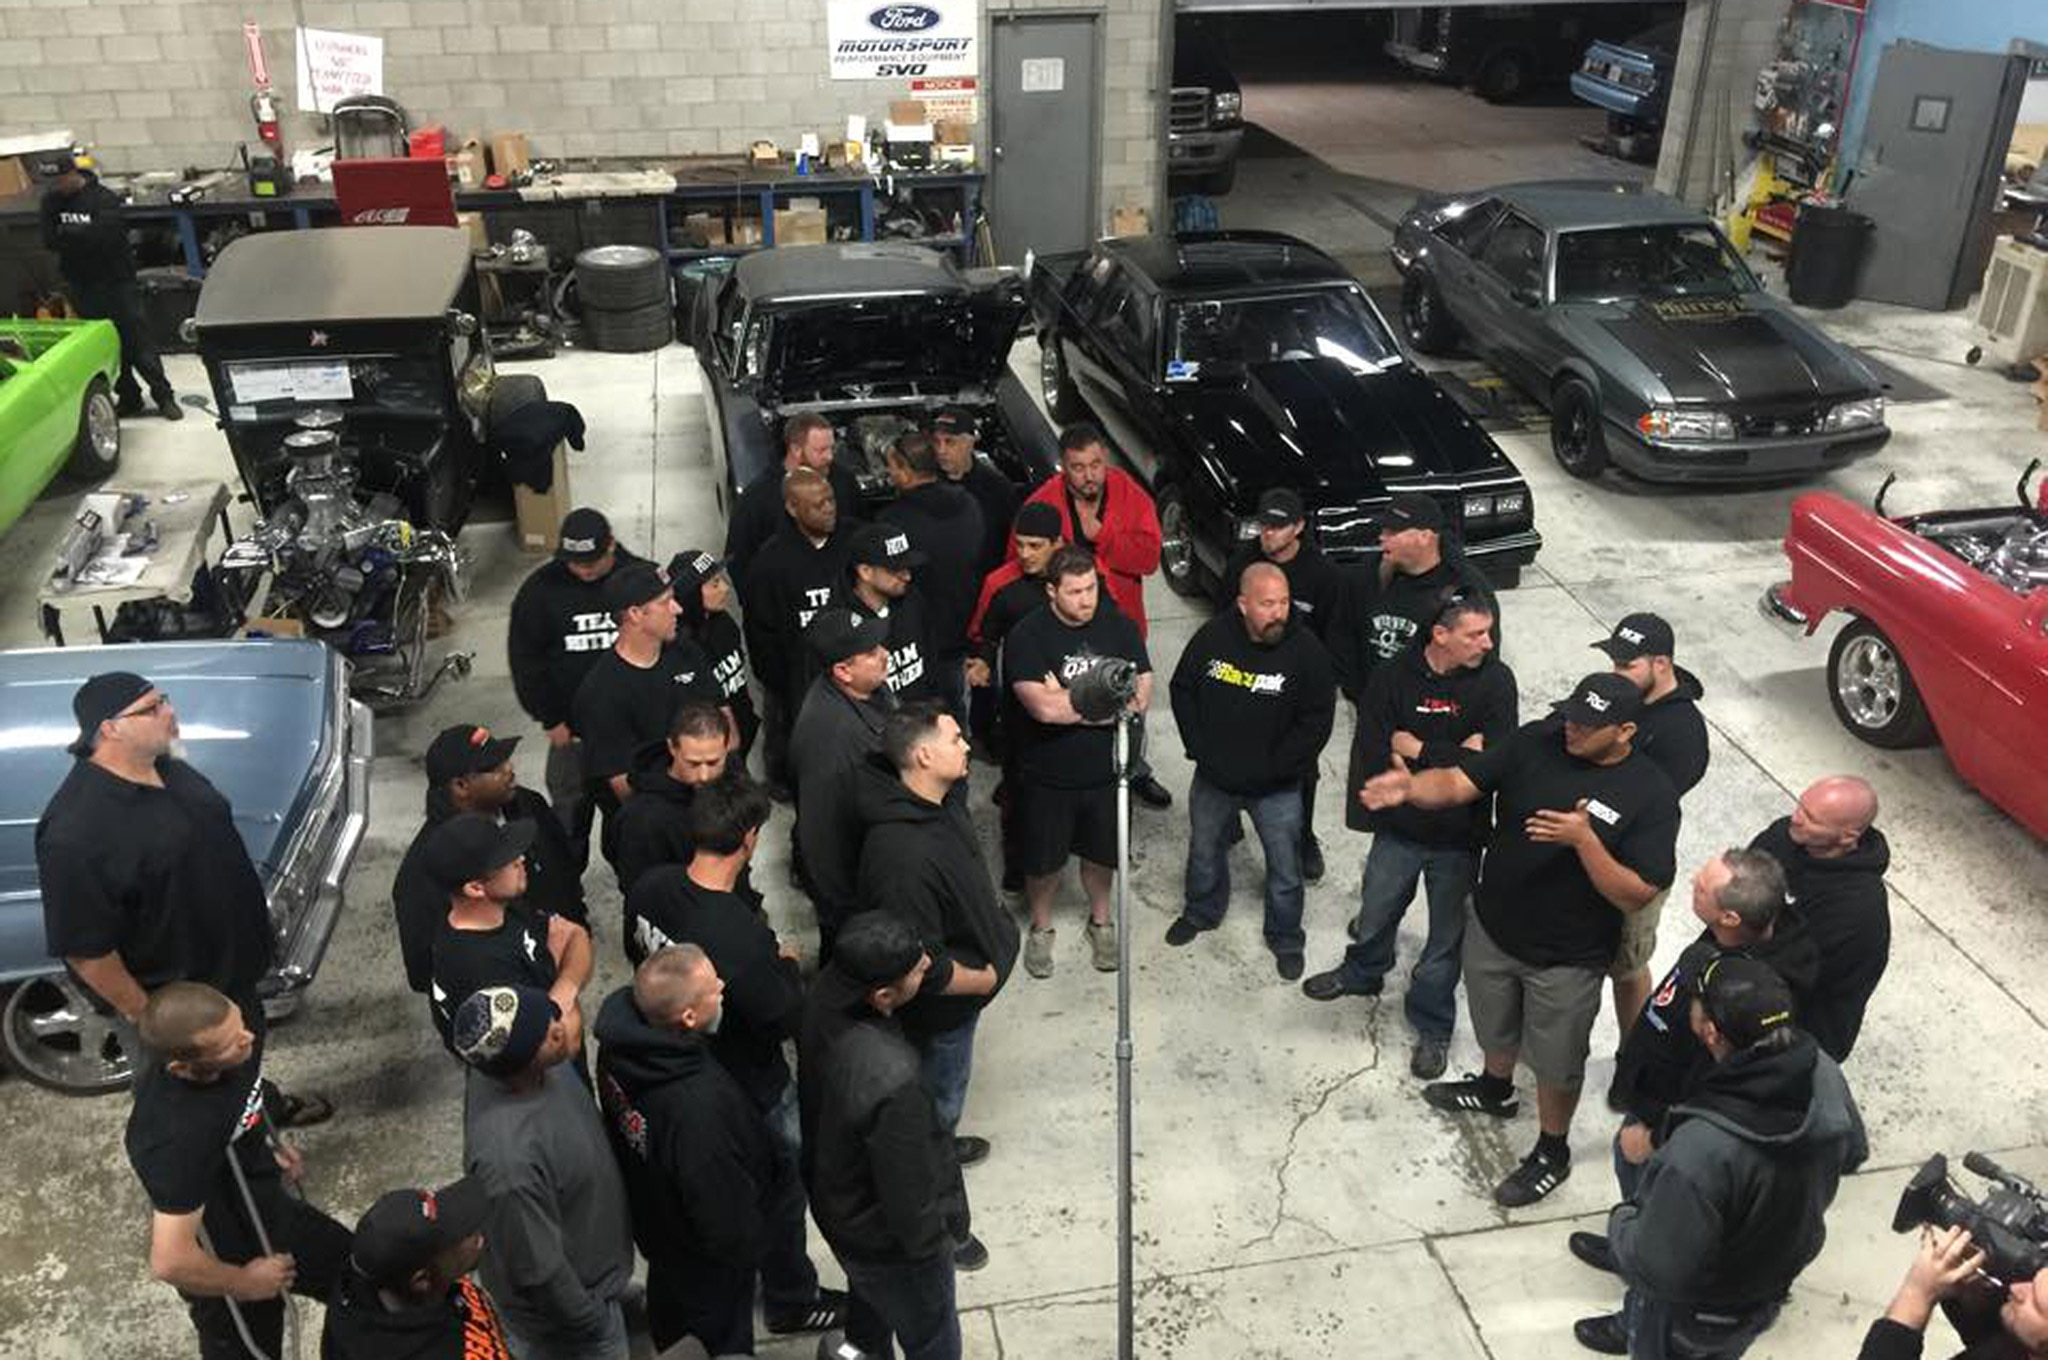 West Coast Street Outlaws Preparing To Film Race